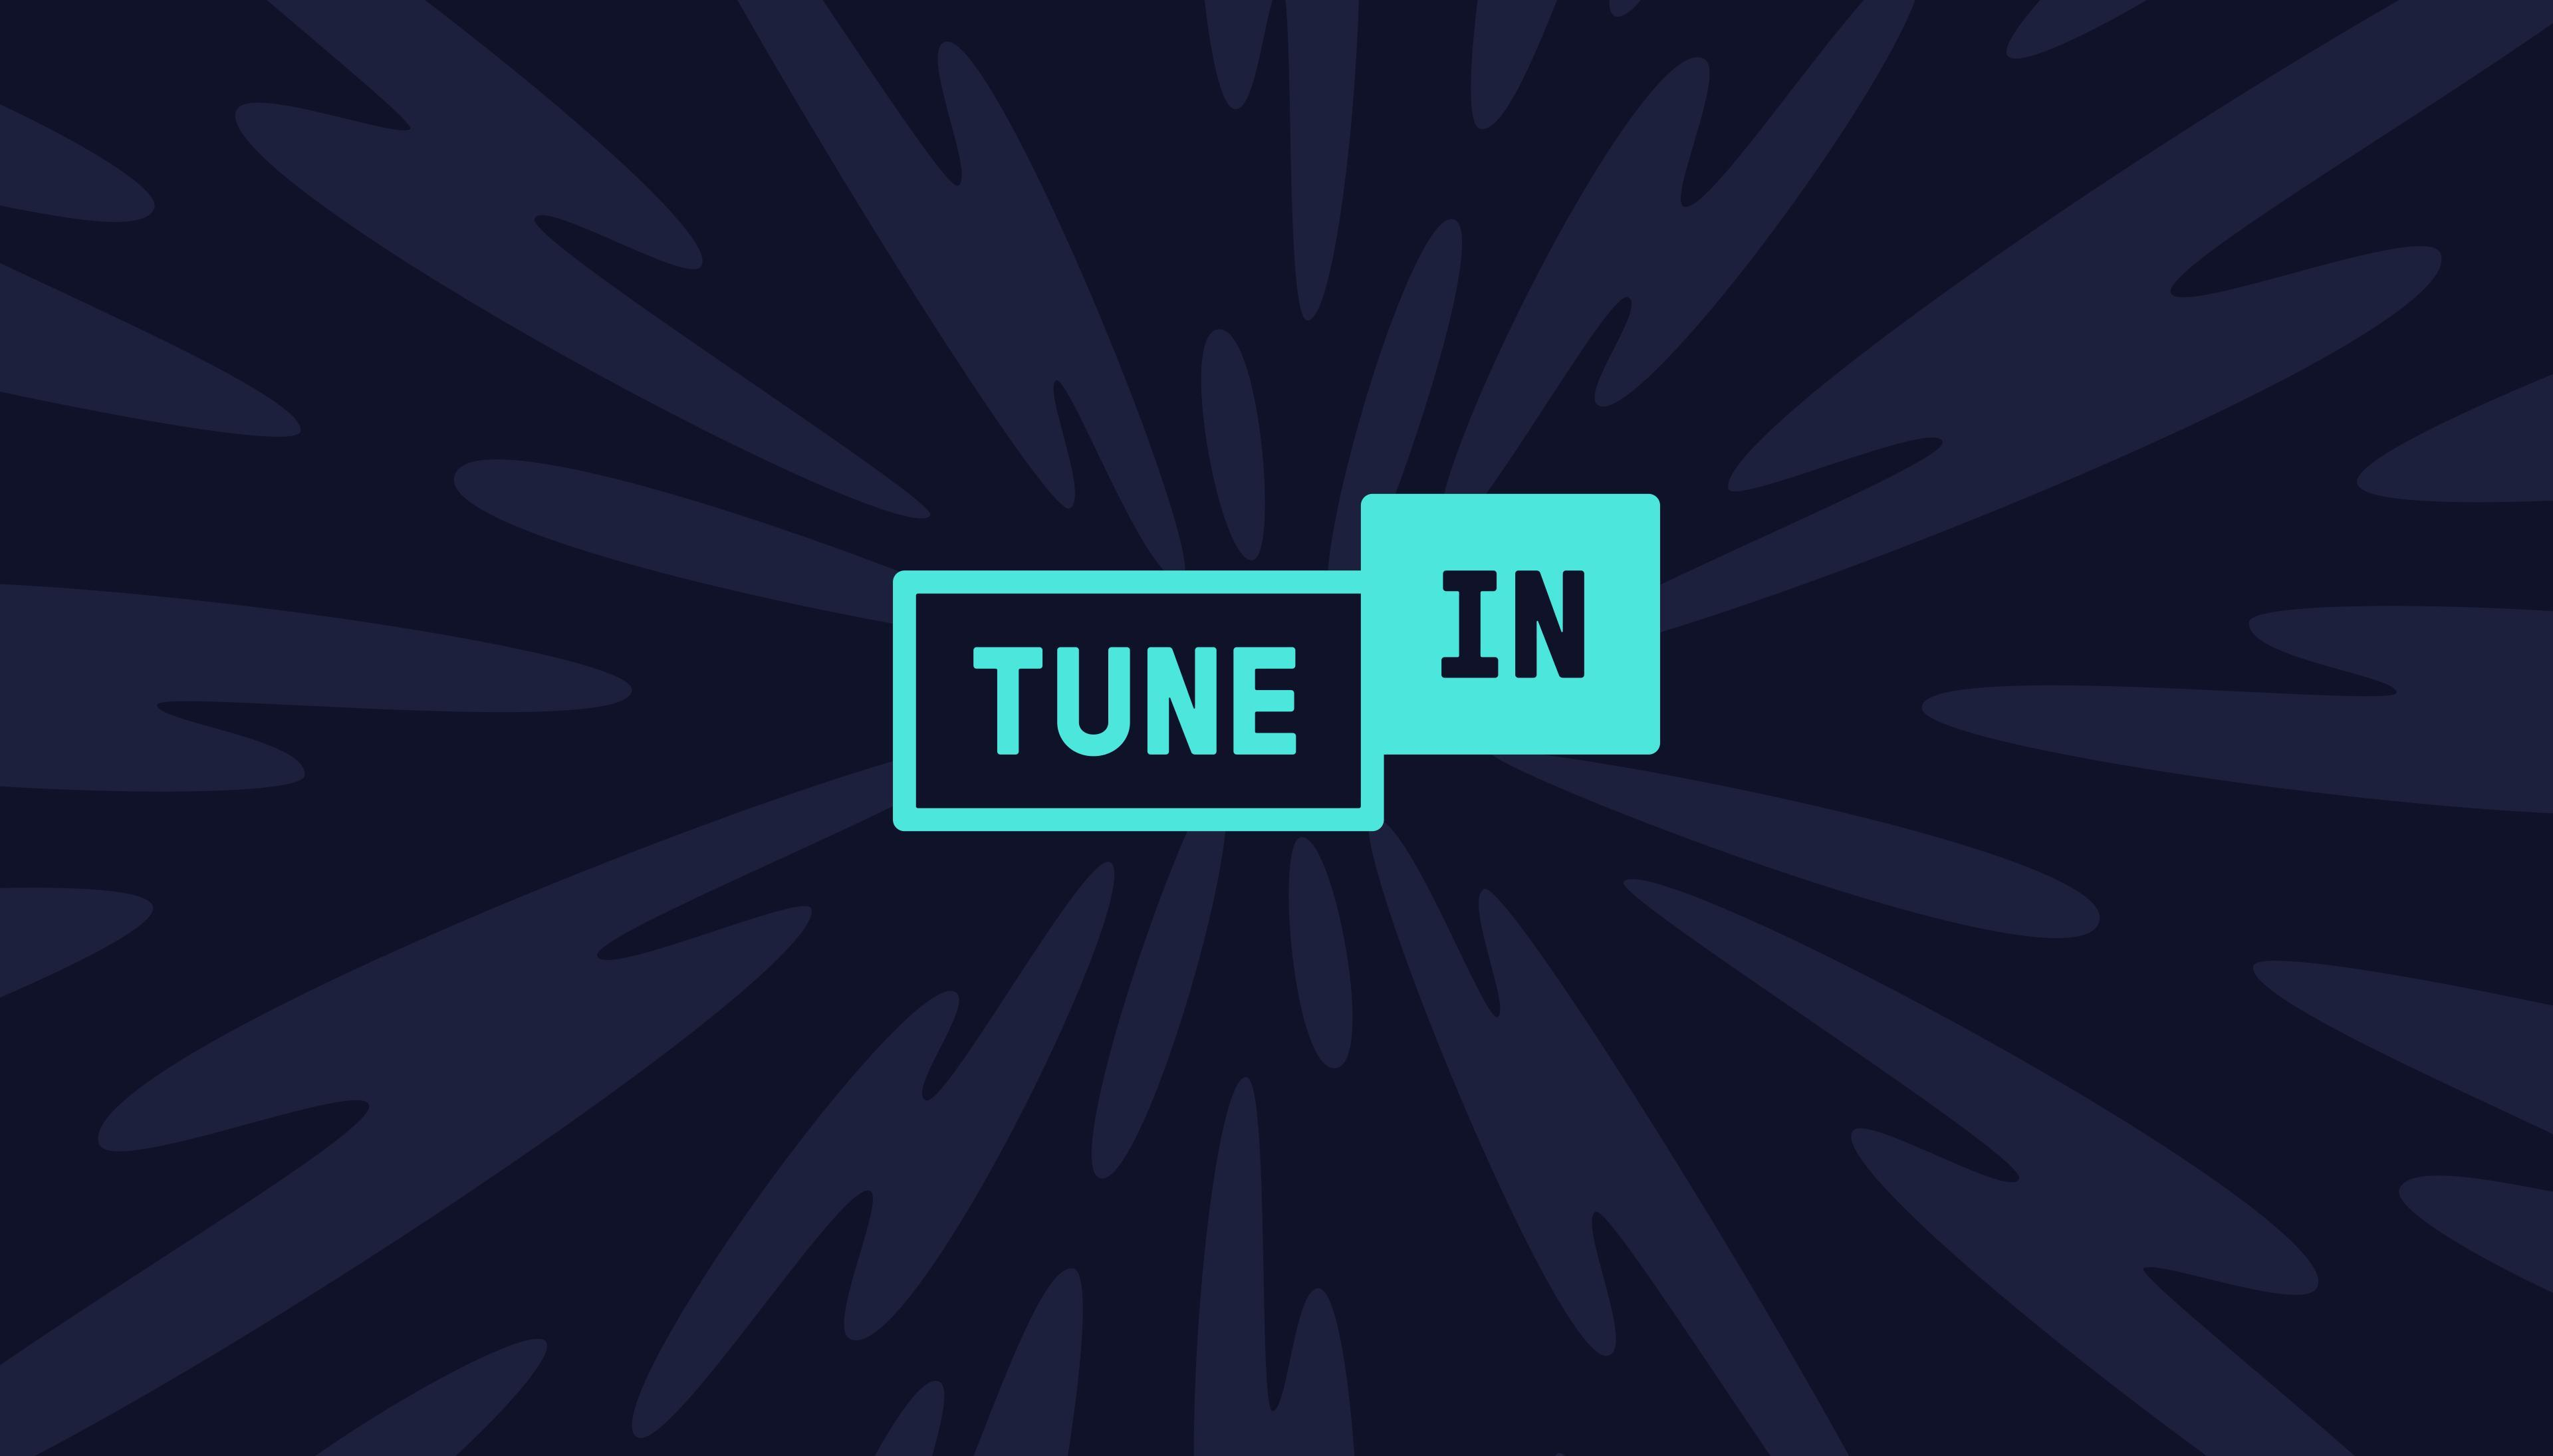 TuneIn - NFL Radio, Free Music, Sports & Podcasts for Android - APK